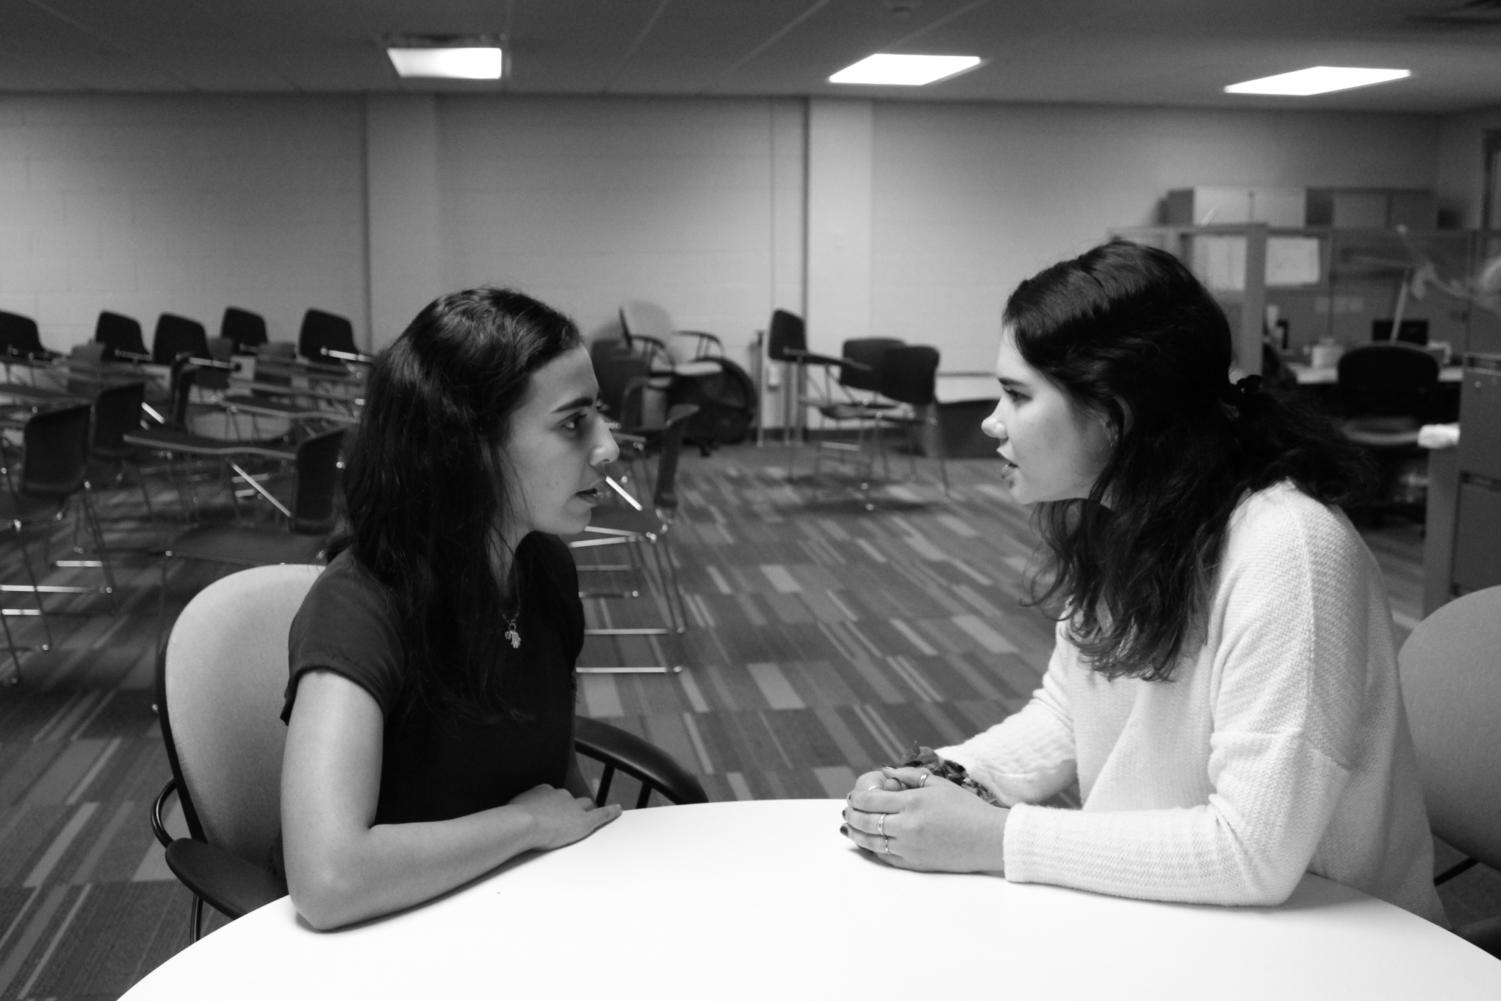 Senators Rana Thabata and Brianna Daniel-Harkins talk after an SGA meeting. Photo credit: Photo illustration by Erin Snodgrass